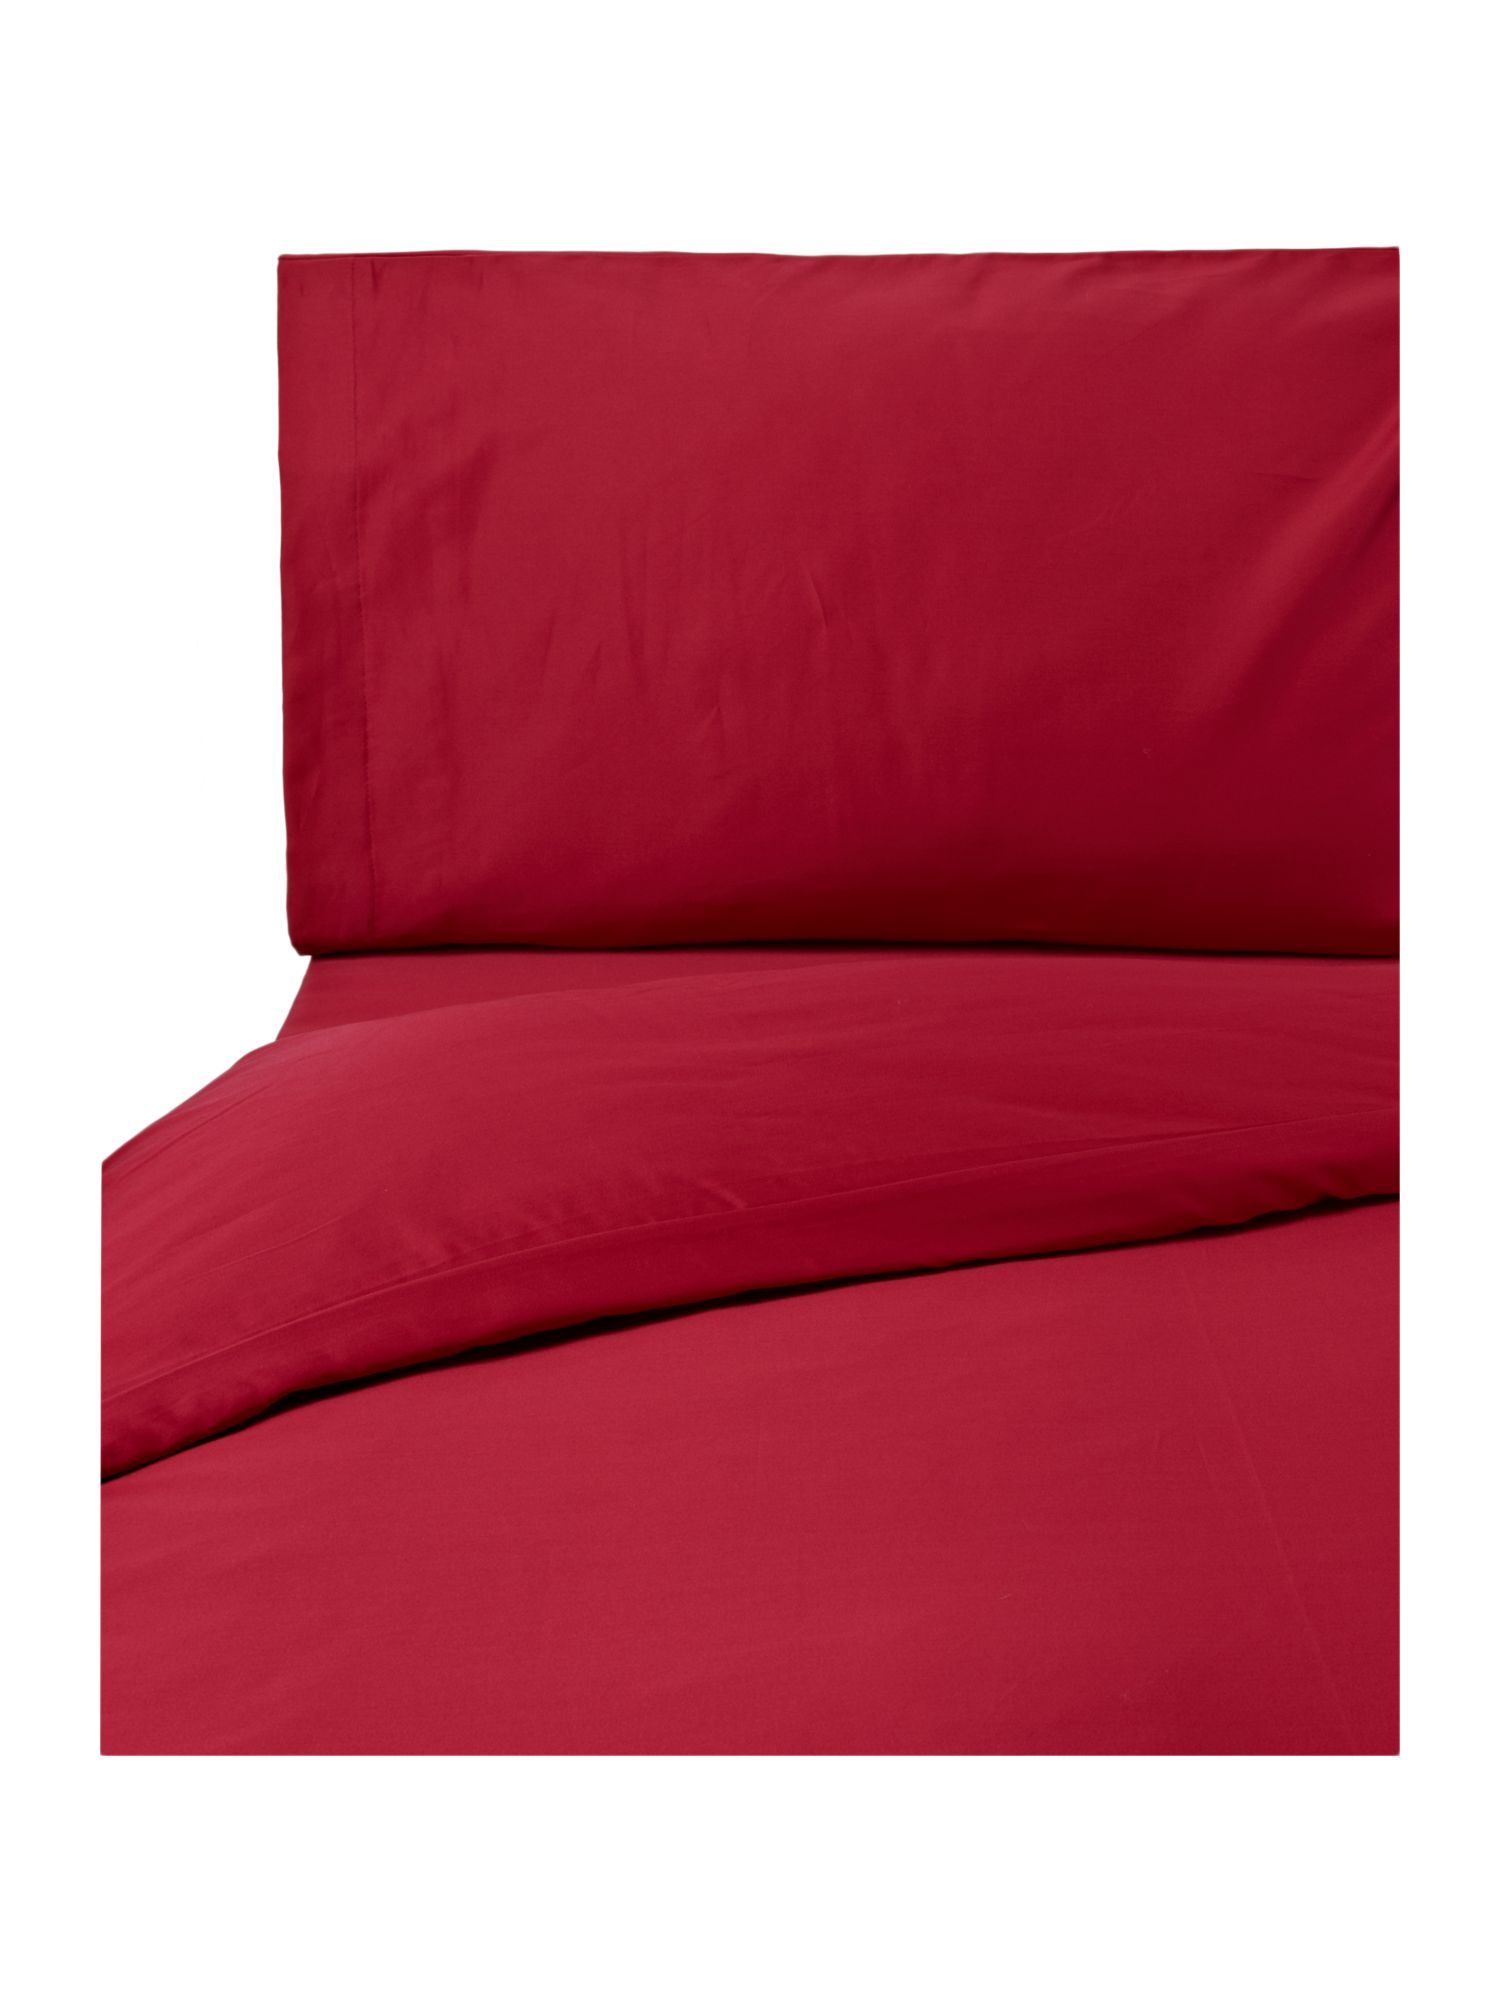 500 Thread count cherry sheeting range